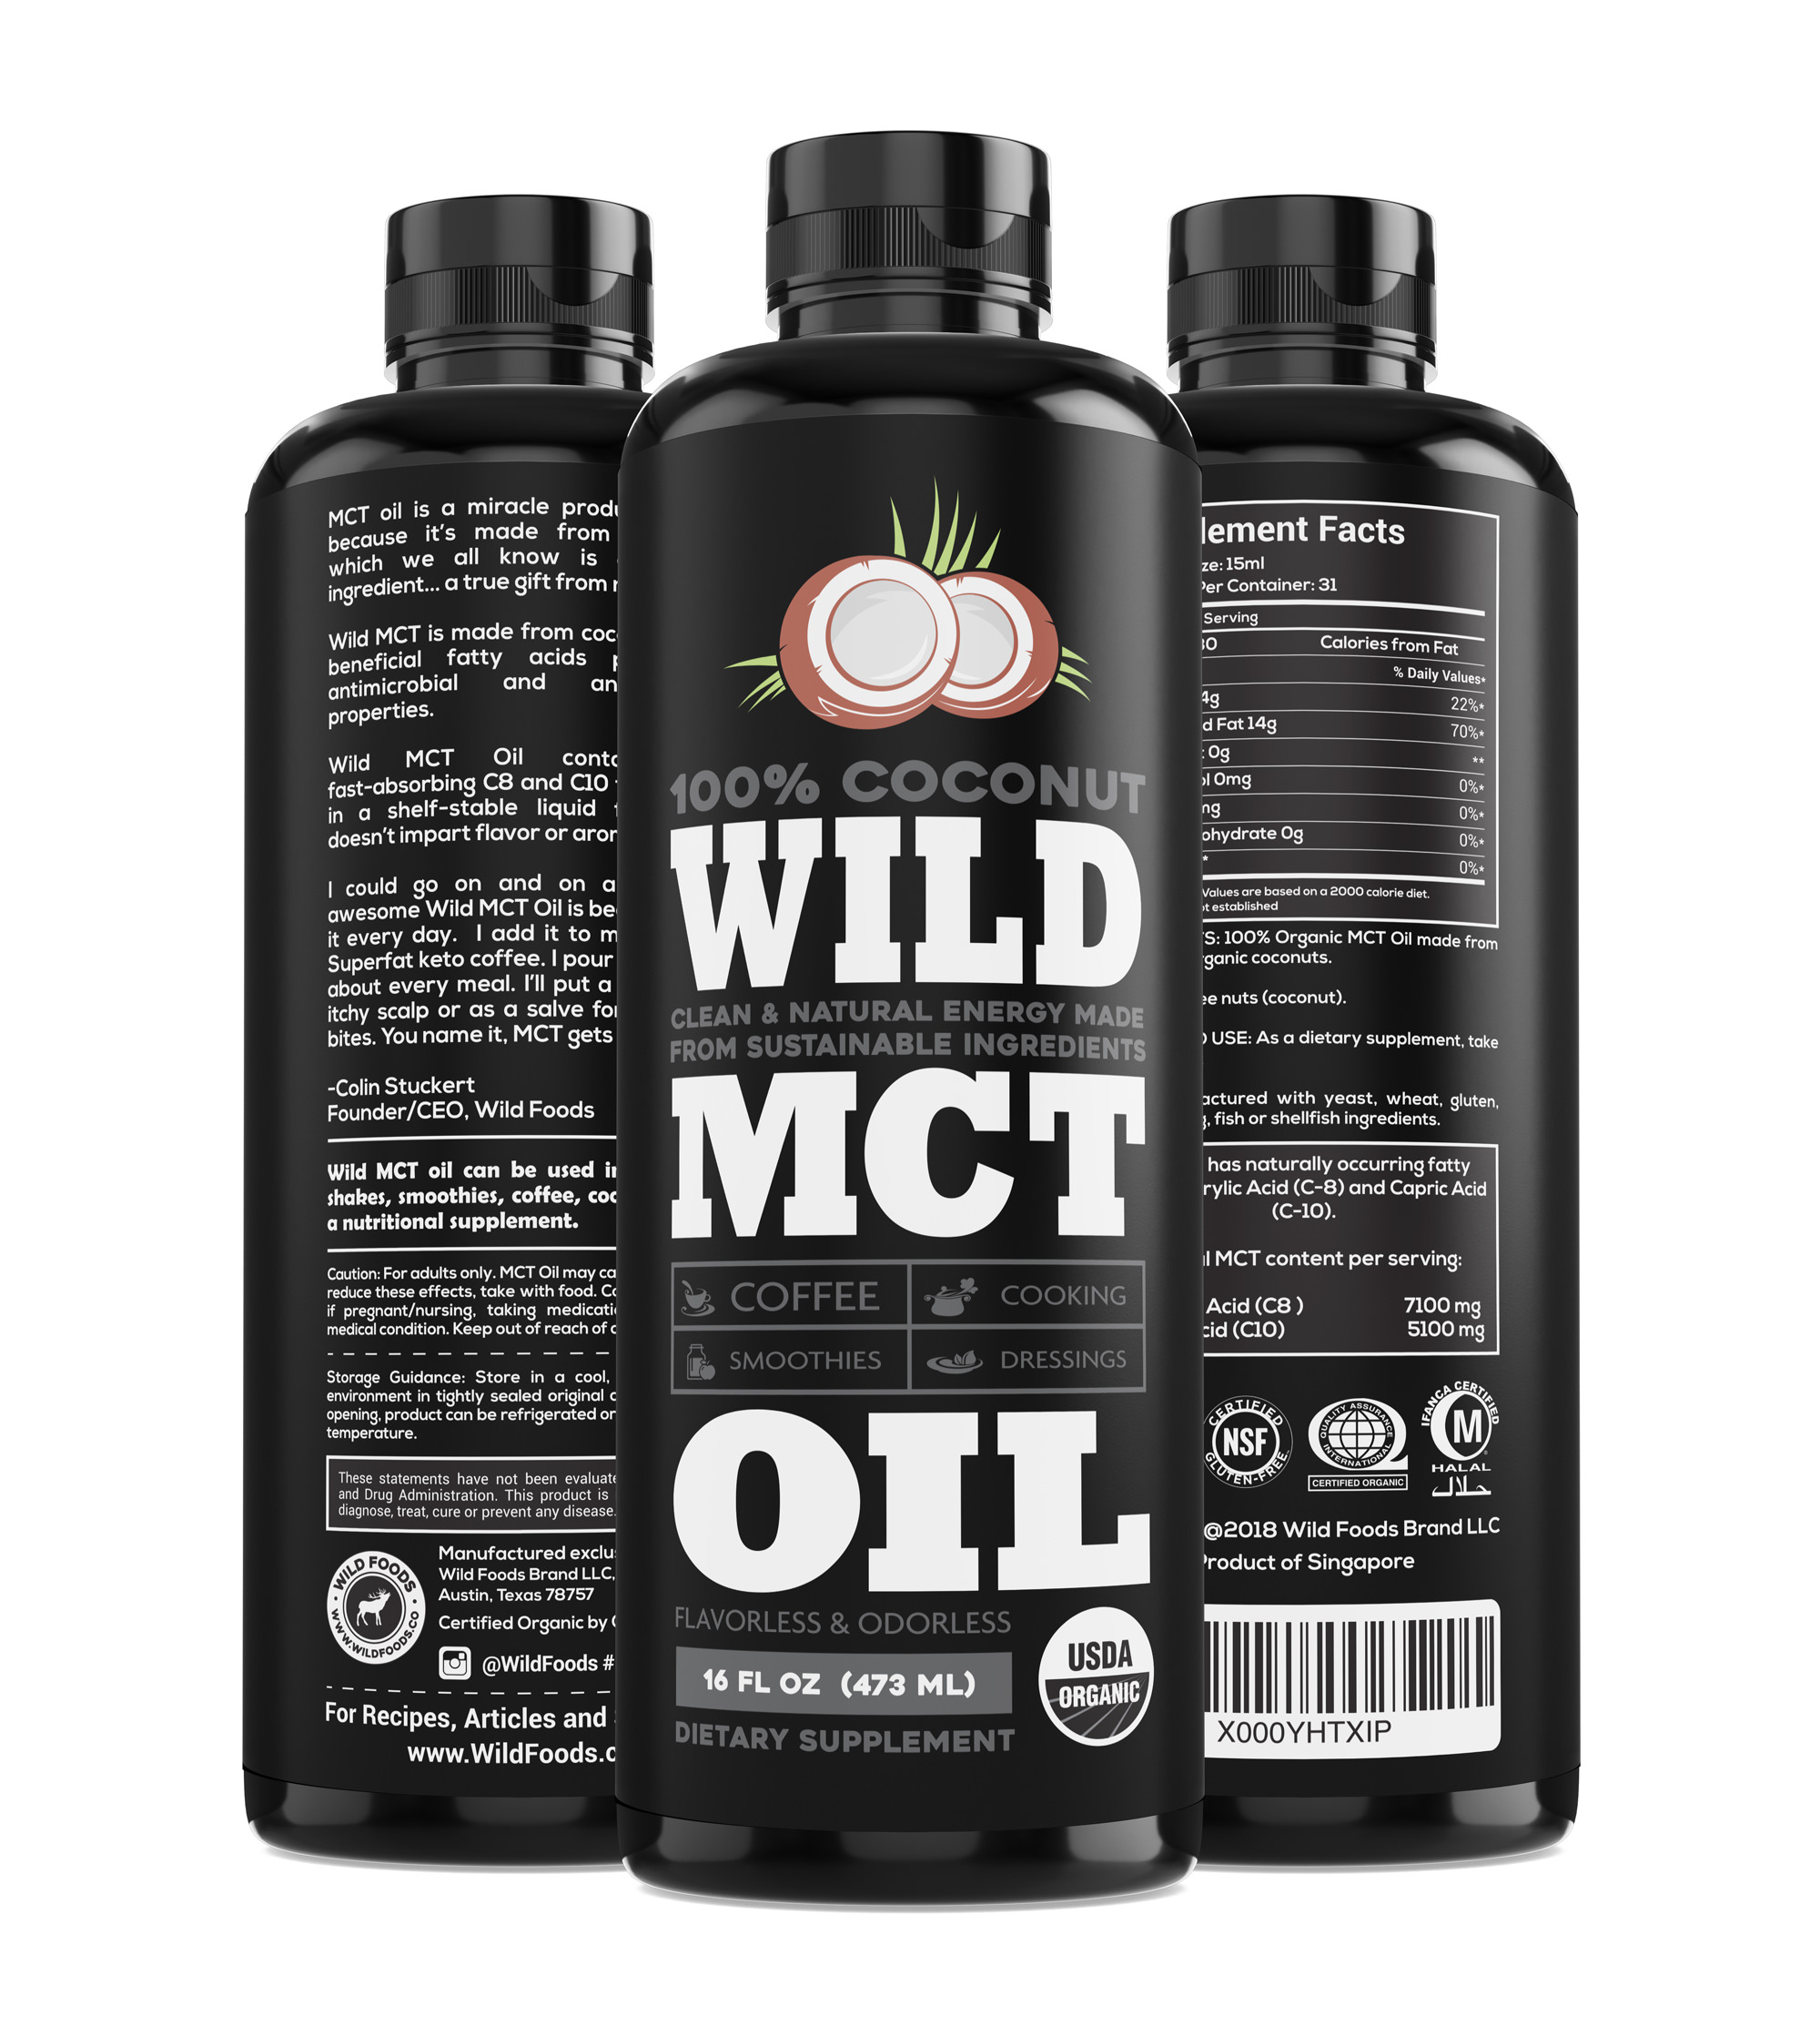 Wild MCT Oil C8 - C10 Blend - Made From 100% Organic, Sustainable Coconuts, Flavorless, Odorless, Supplement, 16oz BPA-FREE Bottle, Non-GMO, Guaranteed Quality